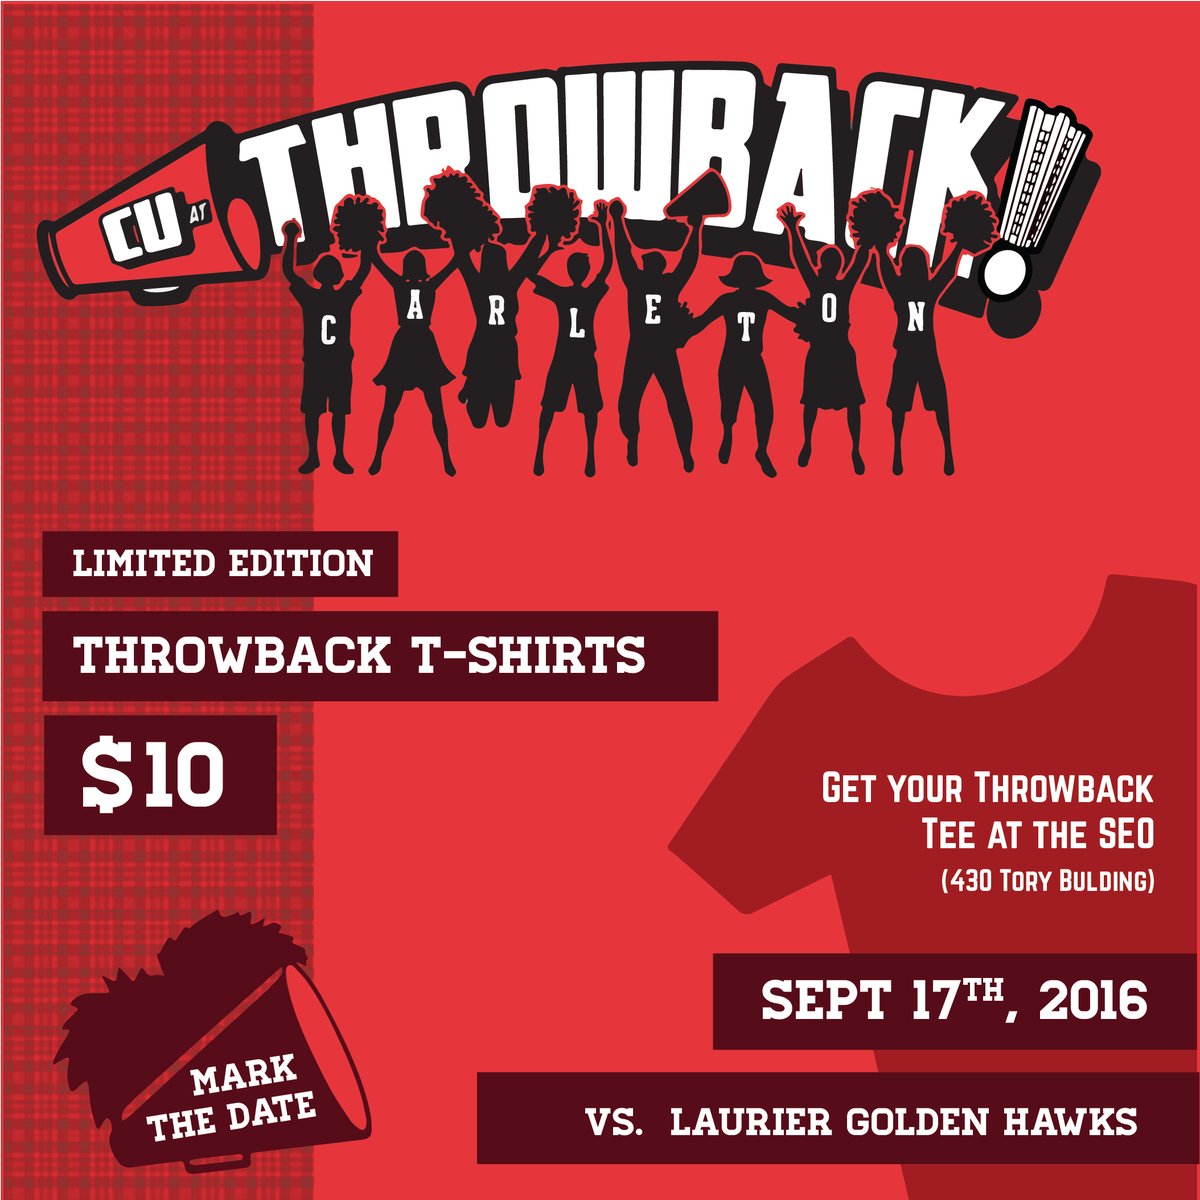 Buy a red throwback